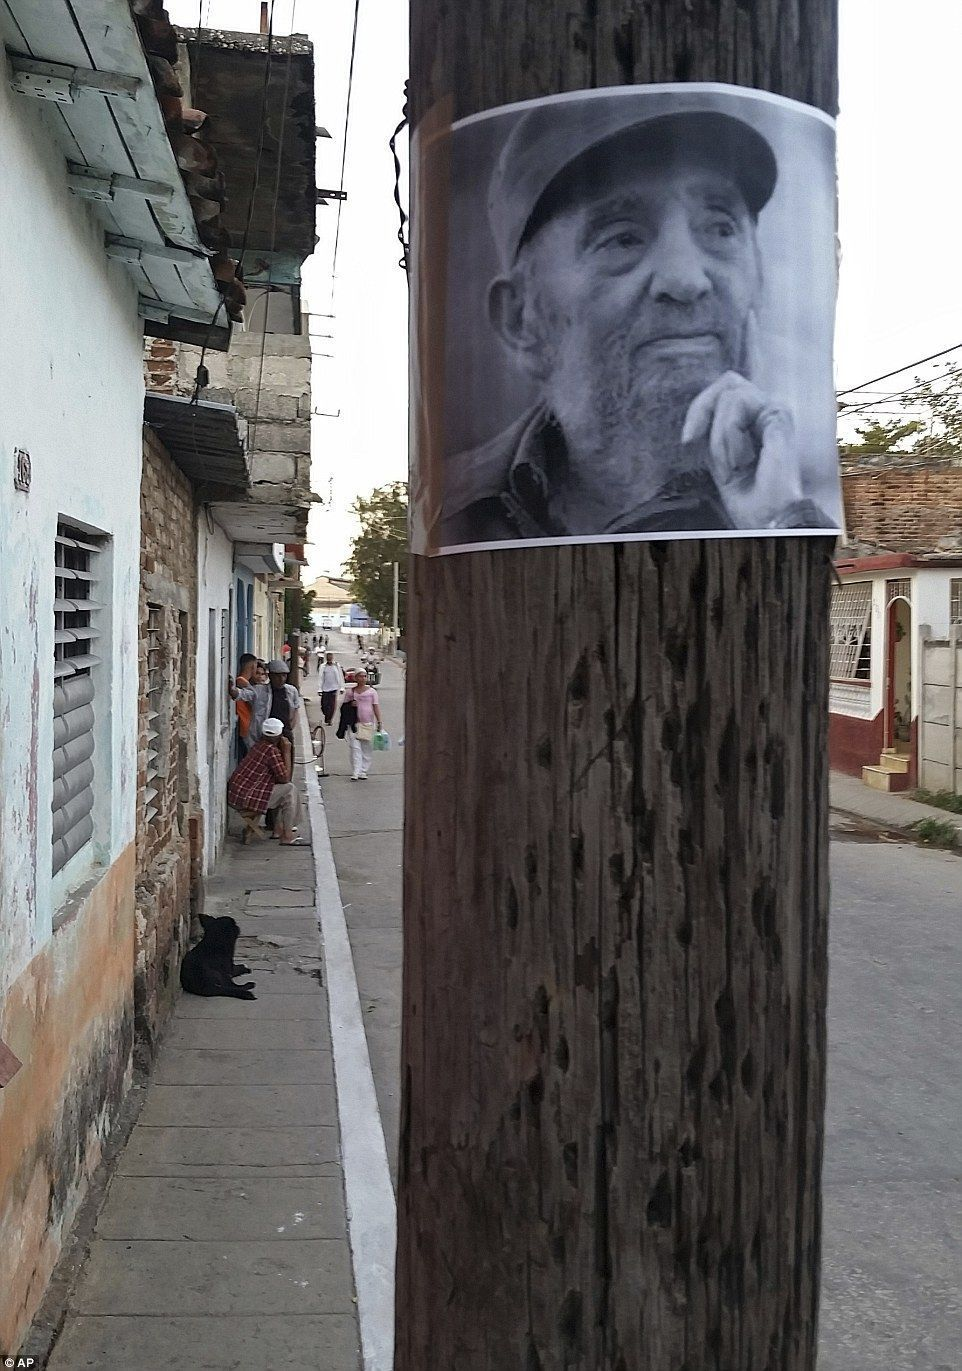 Thousands of Cubans line the streets for Castro's ashes final journey #cubanleader An image of the late Cuban leader Fidel Castro is taped to a wooden pole in downtown Santa Clara on Wednesday, before his ashes arrived in the town #cubanleader Thousands of Cubans line the streets for Castro's ashes final journey #cubanleader An image of the late Cuban leader Fidel Castro is taped to a wooden pole in downtown Santa Clara on Wednesday, before his ashes arrived in the town #cubanleader